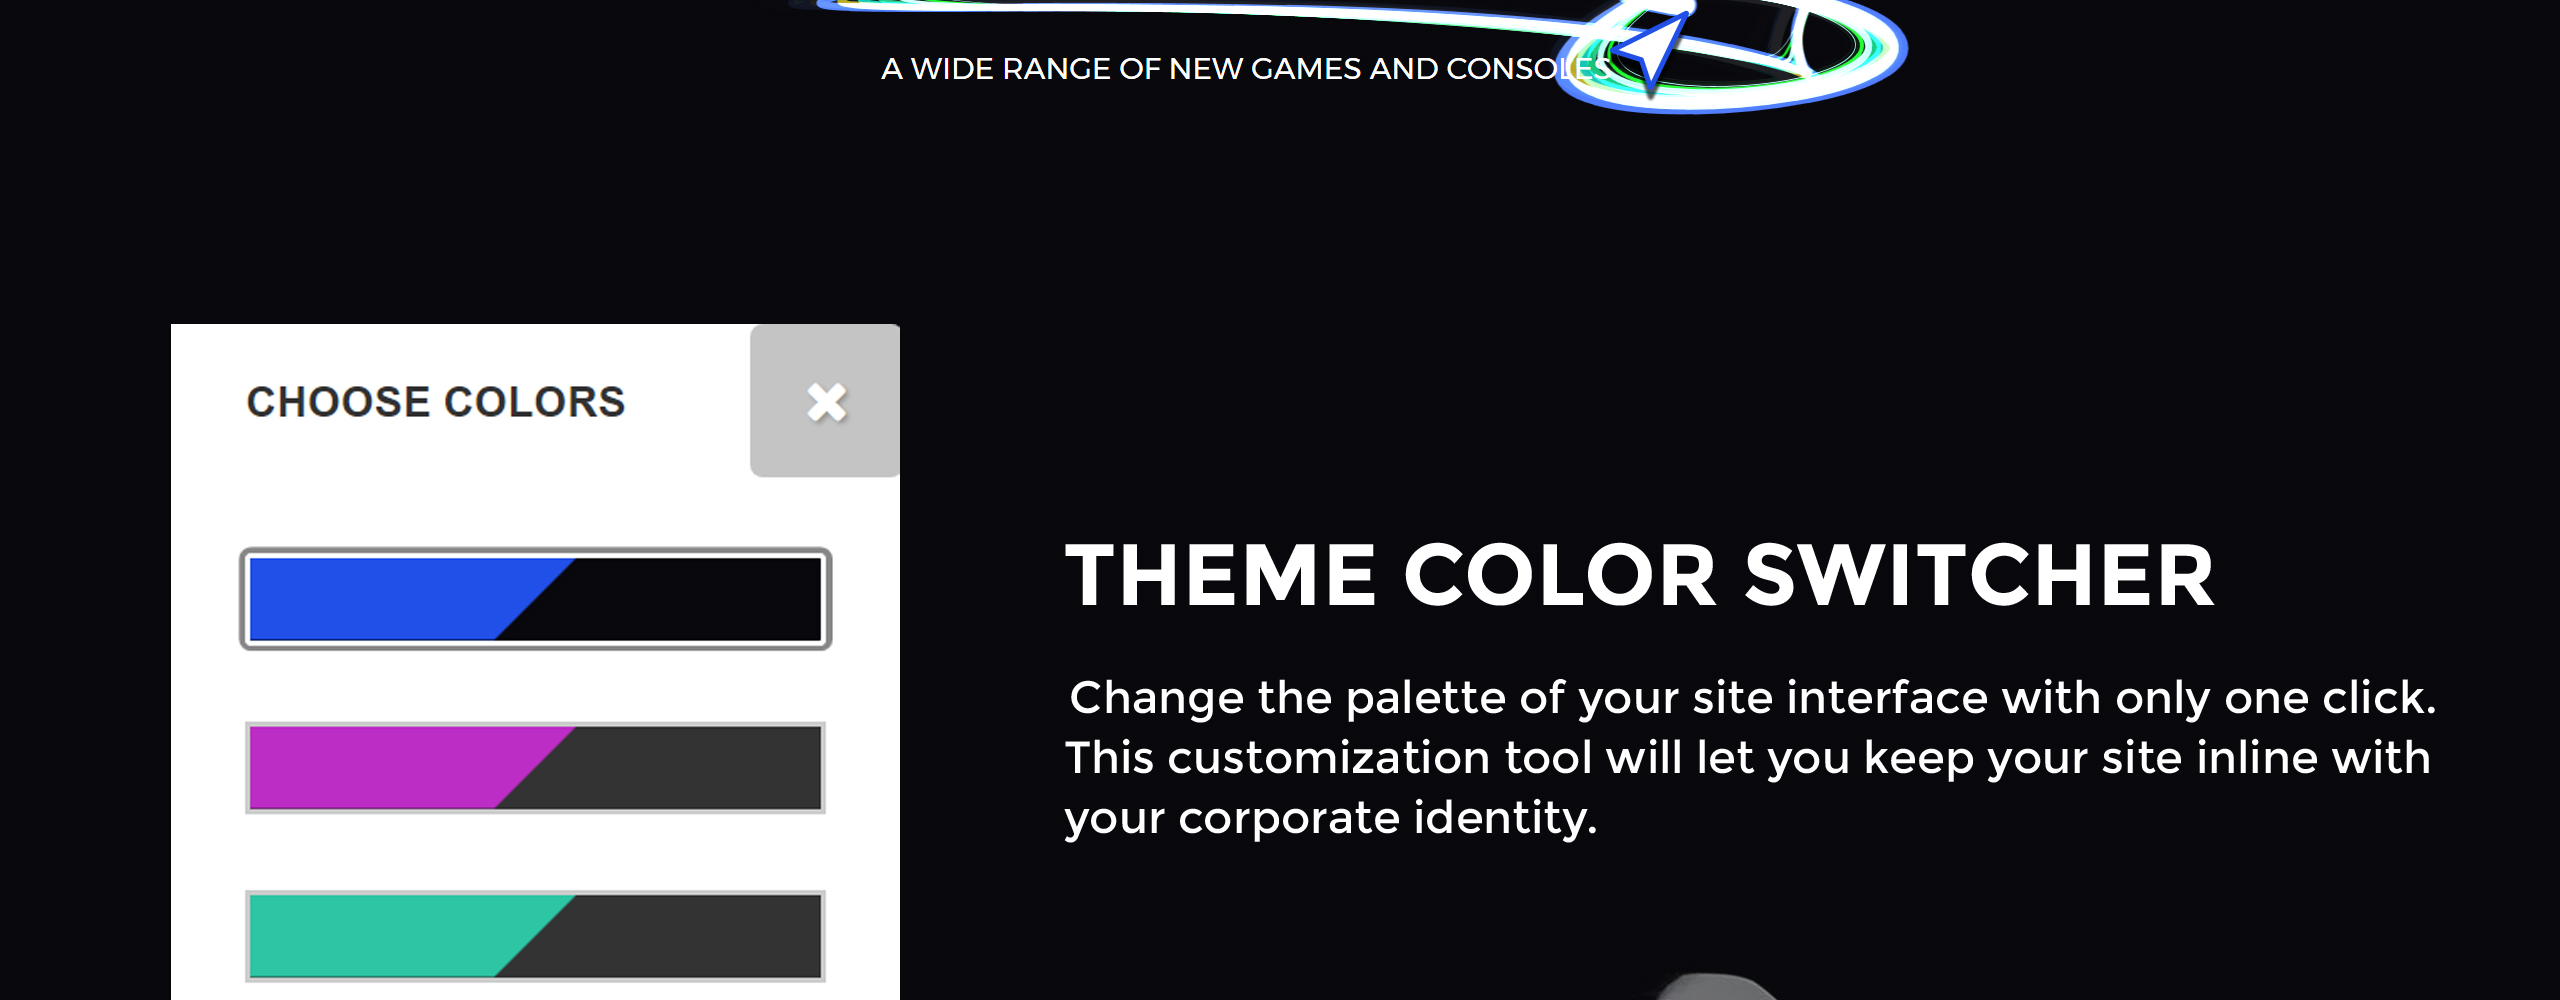 Game Console - Bright Gaming Shopify Theme